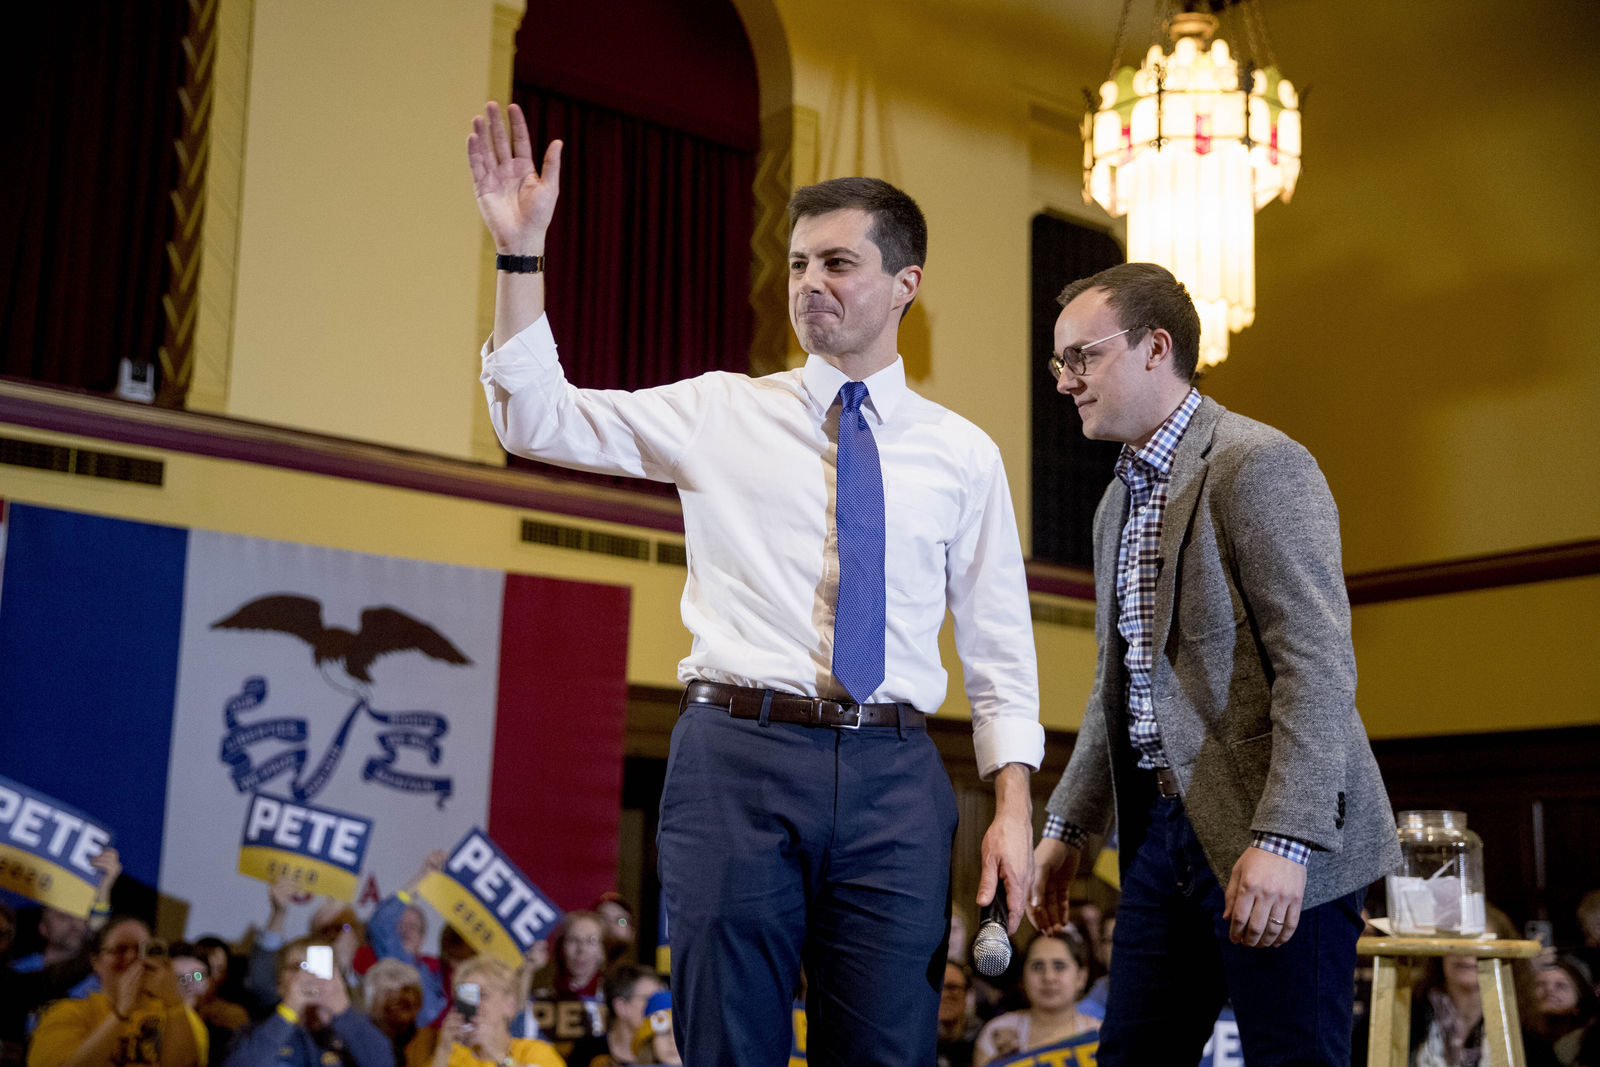 Democratic presidential candidate former South Bend, Ind., Mayor Pete Buttigieg, left, and his husband Chasten Buttigieg, right, stand onstage at a campaign stop at Iowa State University, Monday, Jan. 13, 2020, in Aimes, Iowa. (AP Photo/Andrew Harnik)